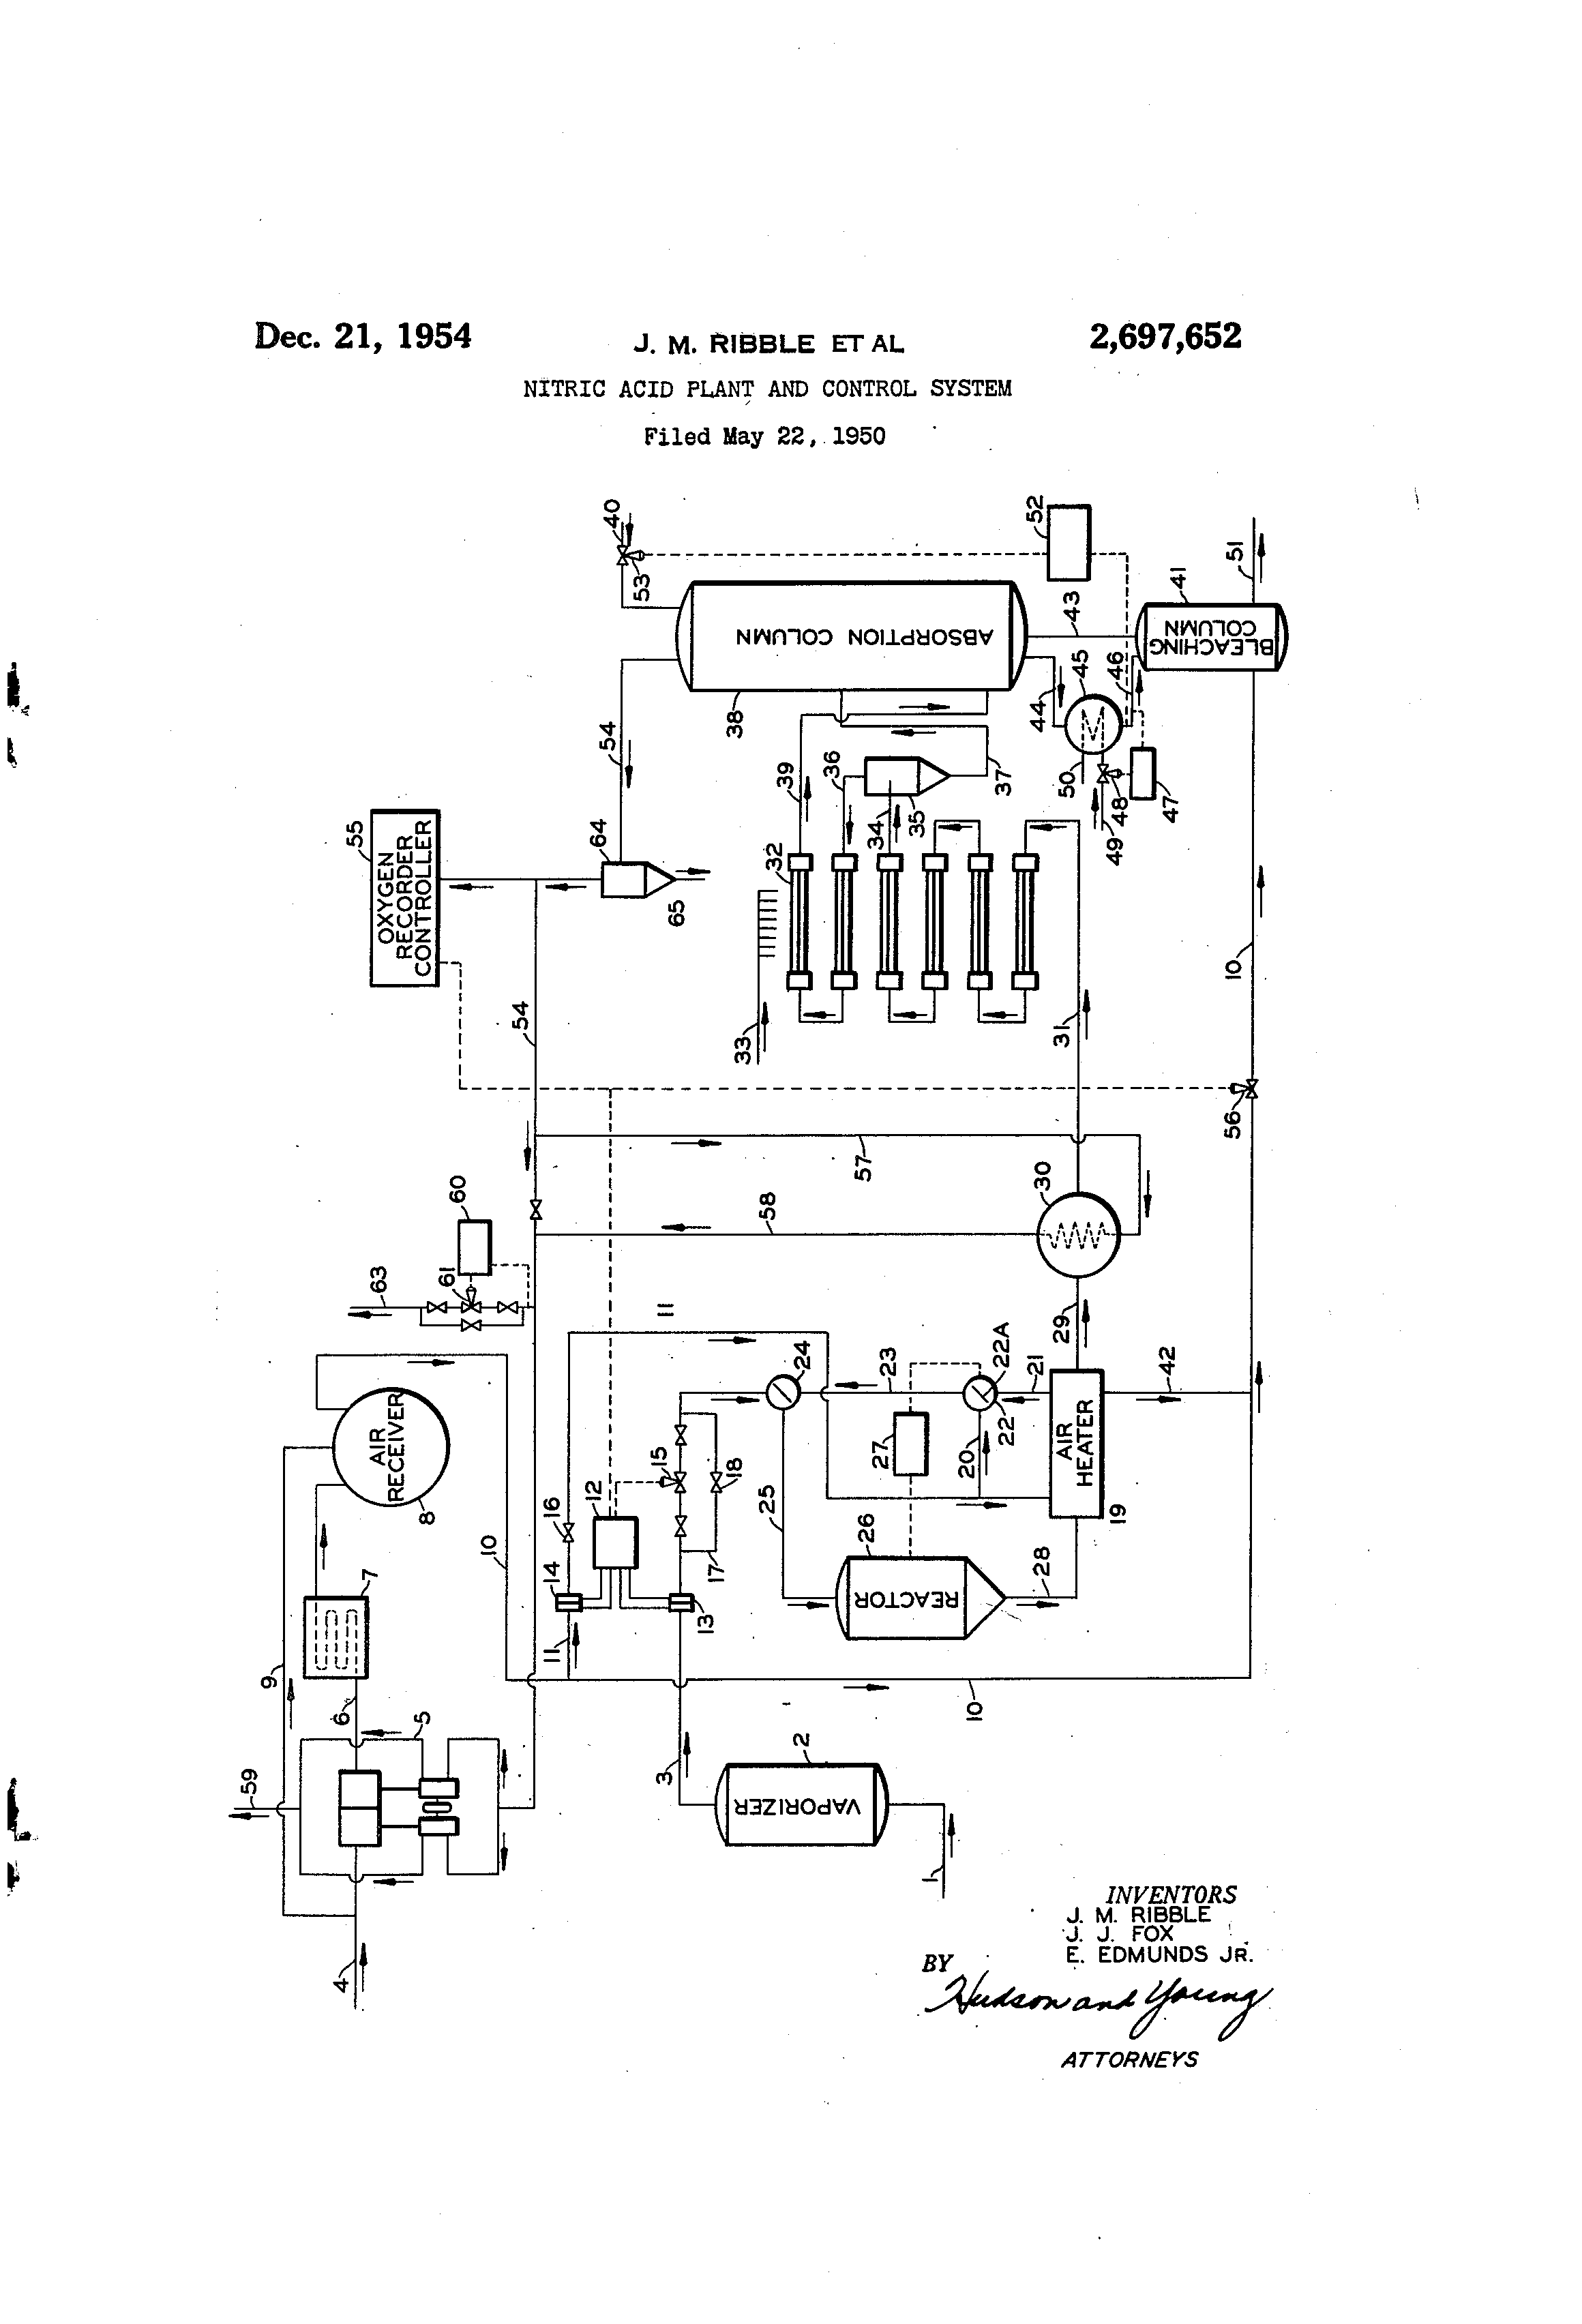 89 Process Flow Diagram Of Nitric Acid Production Process